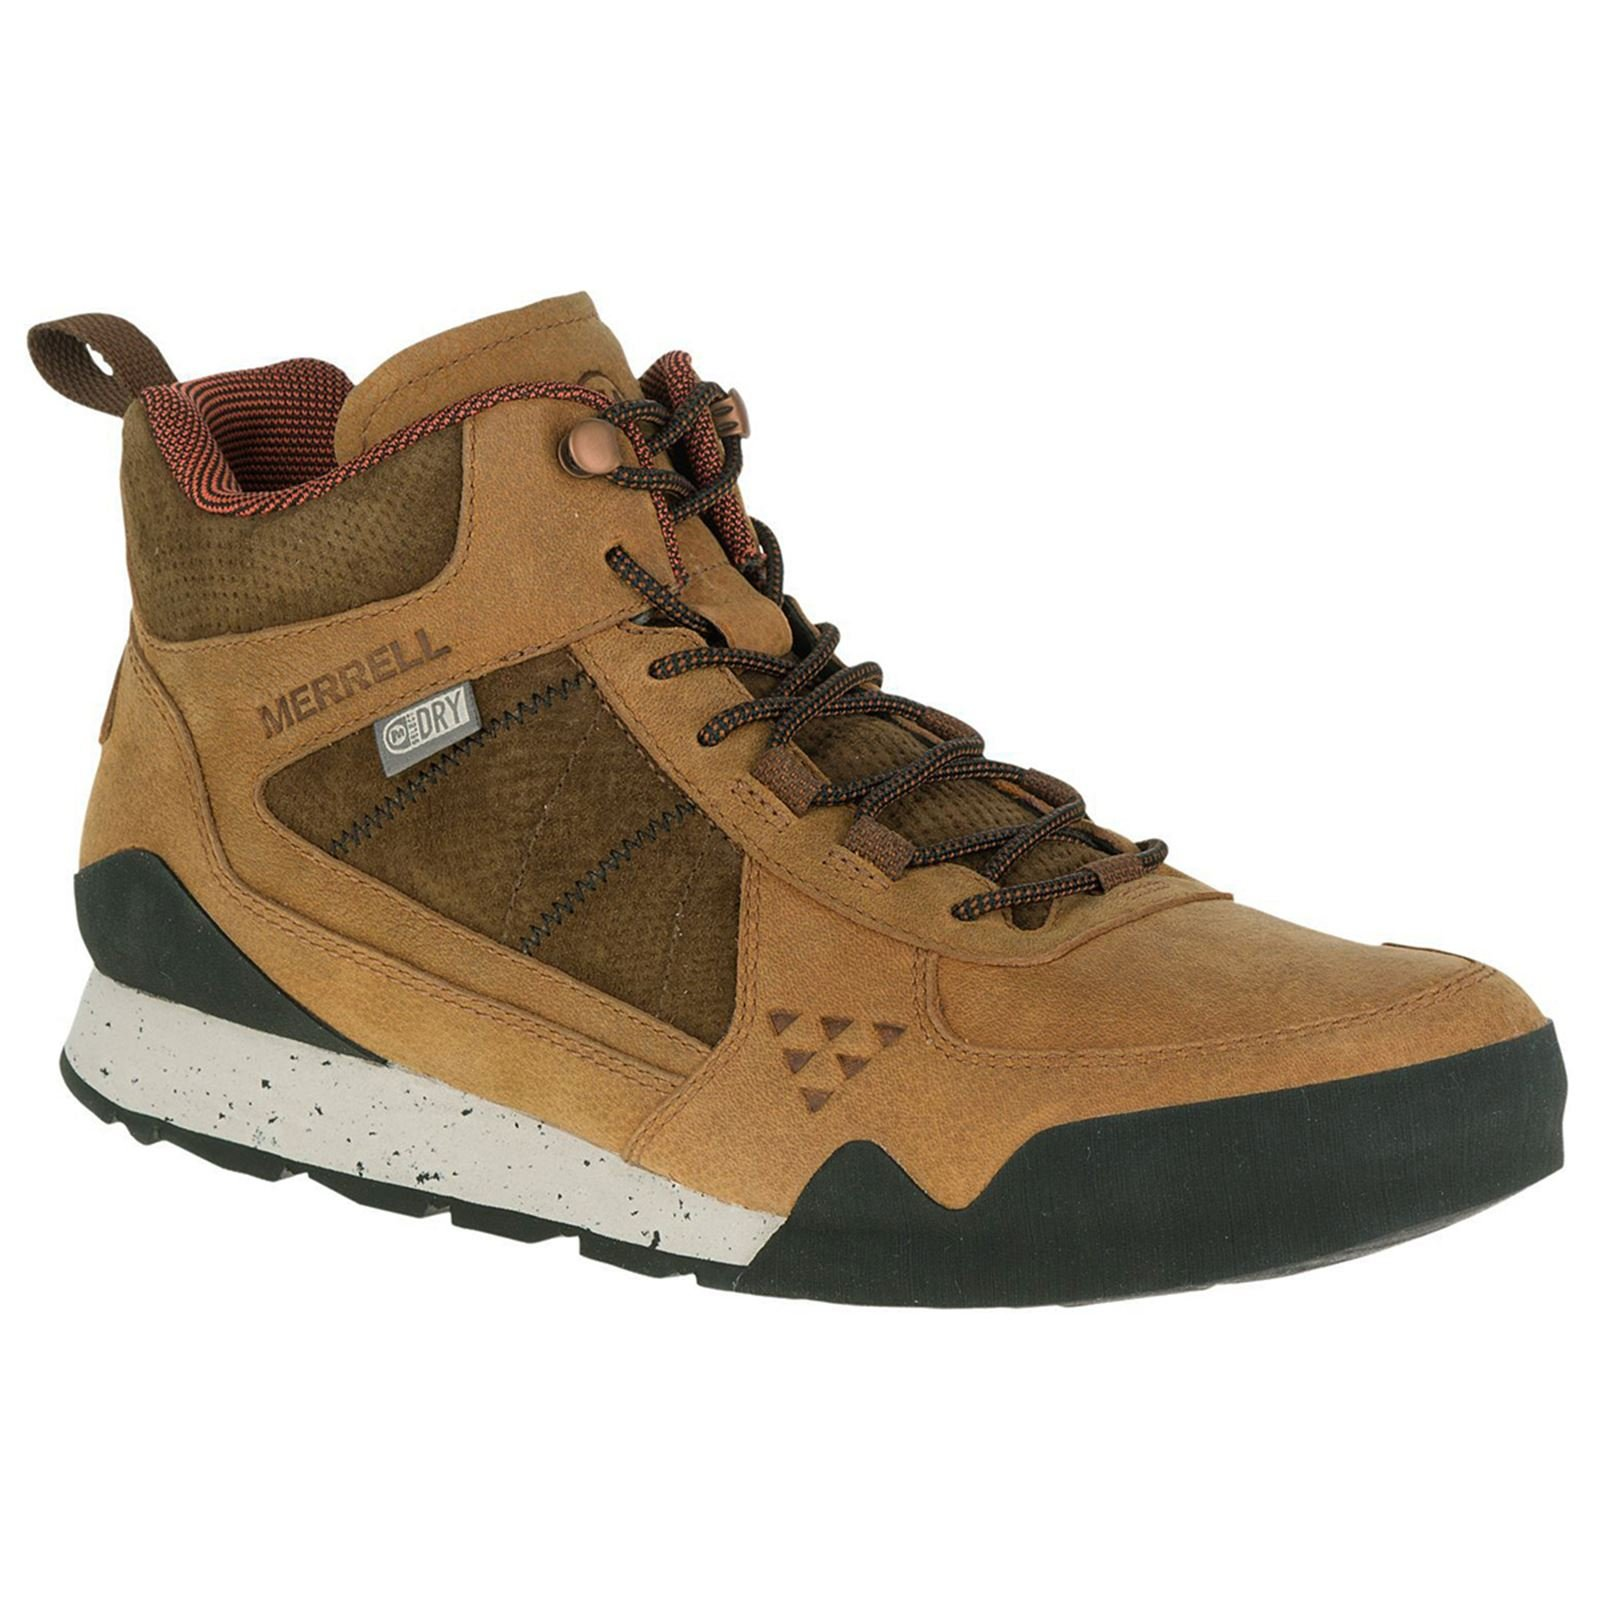 Merrell Men's Burnt Rock Mid Waterproof Fashion Sneaker, Oak, 9.5 M US